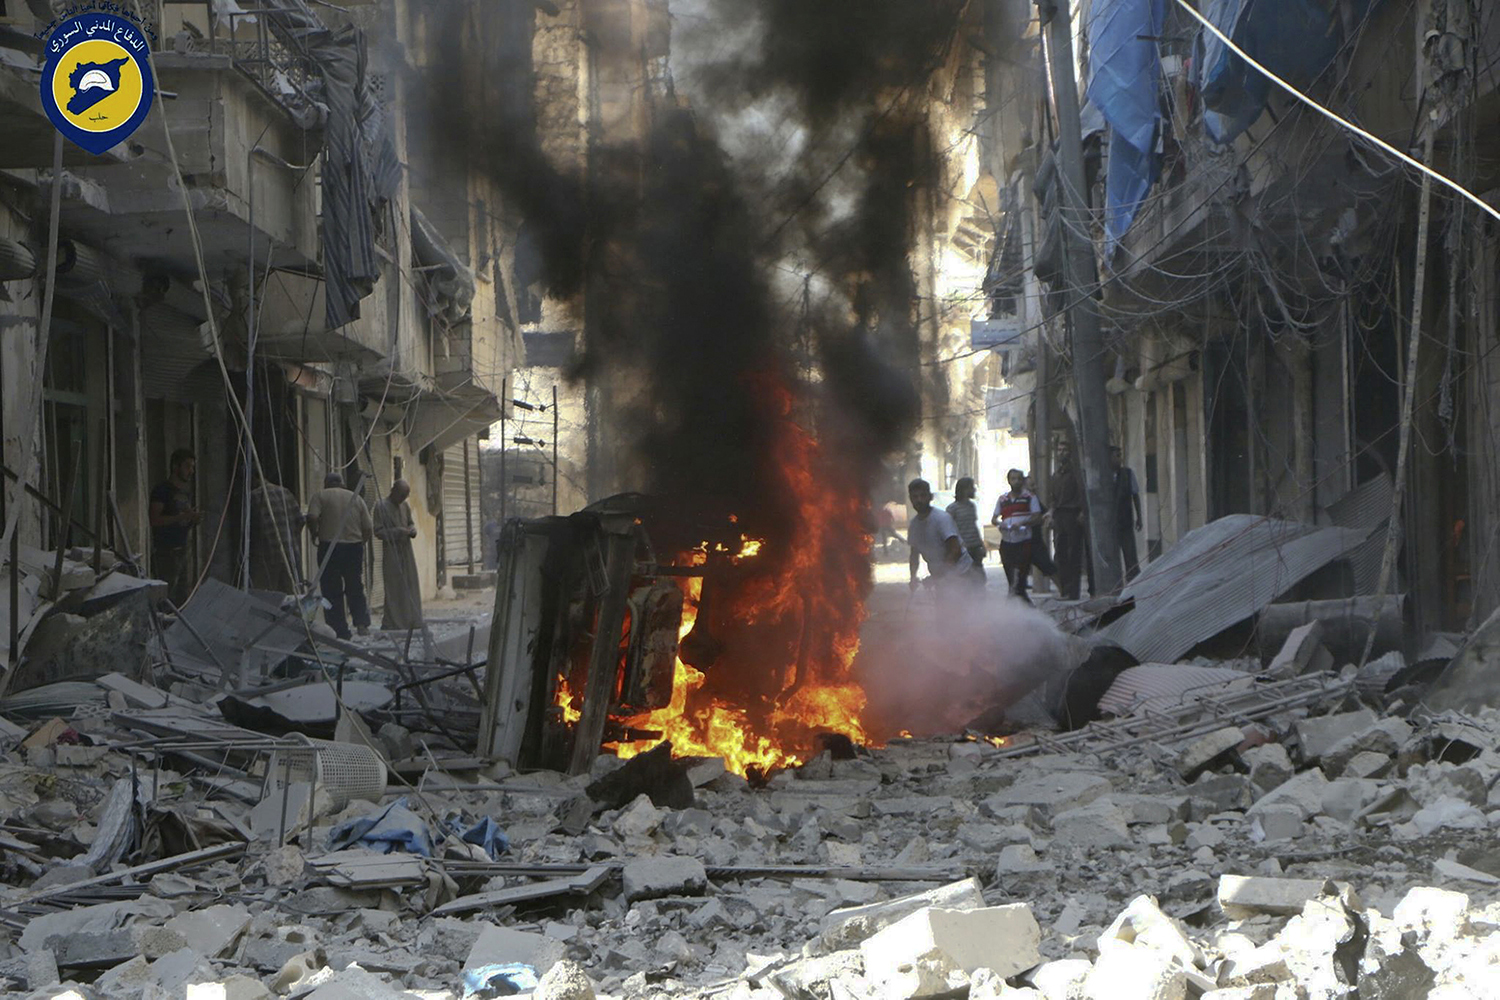 In this photo provided by the Syrian Civil Defense group known as the White Helmets, Syrians inspect damaged buildings after airstrikes by government helicopters on the rebel-held Aleppo neighborhood of Mashhad, Syria, Tuesday Sept. 27, 2016. With diplomacy in tatters and a month left to go before U.S. elections, the Syrian government and its Russian allies are using the time to try and recapture the northern city of Aleppo, mobilizing pro-government militias in the Old City and pressing ahead with the most destructive aerial campaign of the past five years. (Syrian Civil Defense White Helmets via AP)